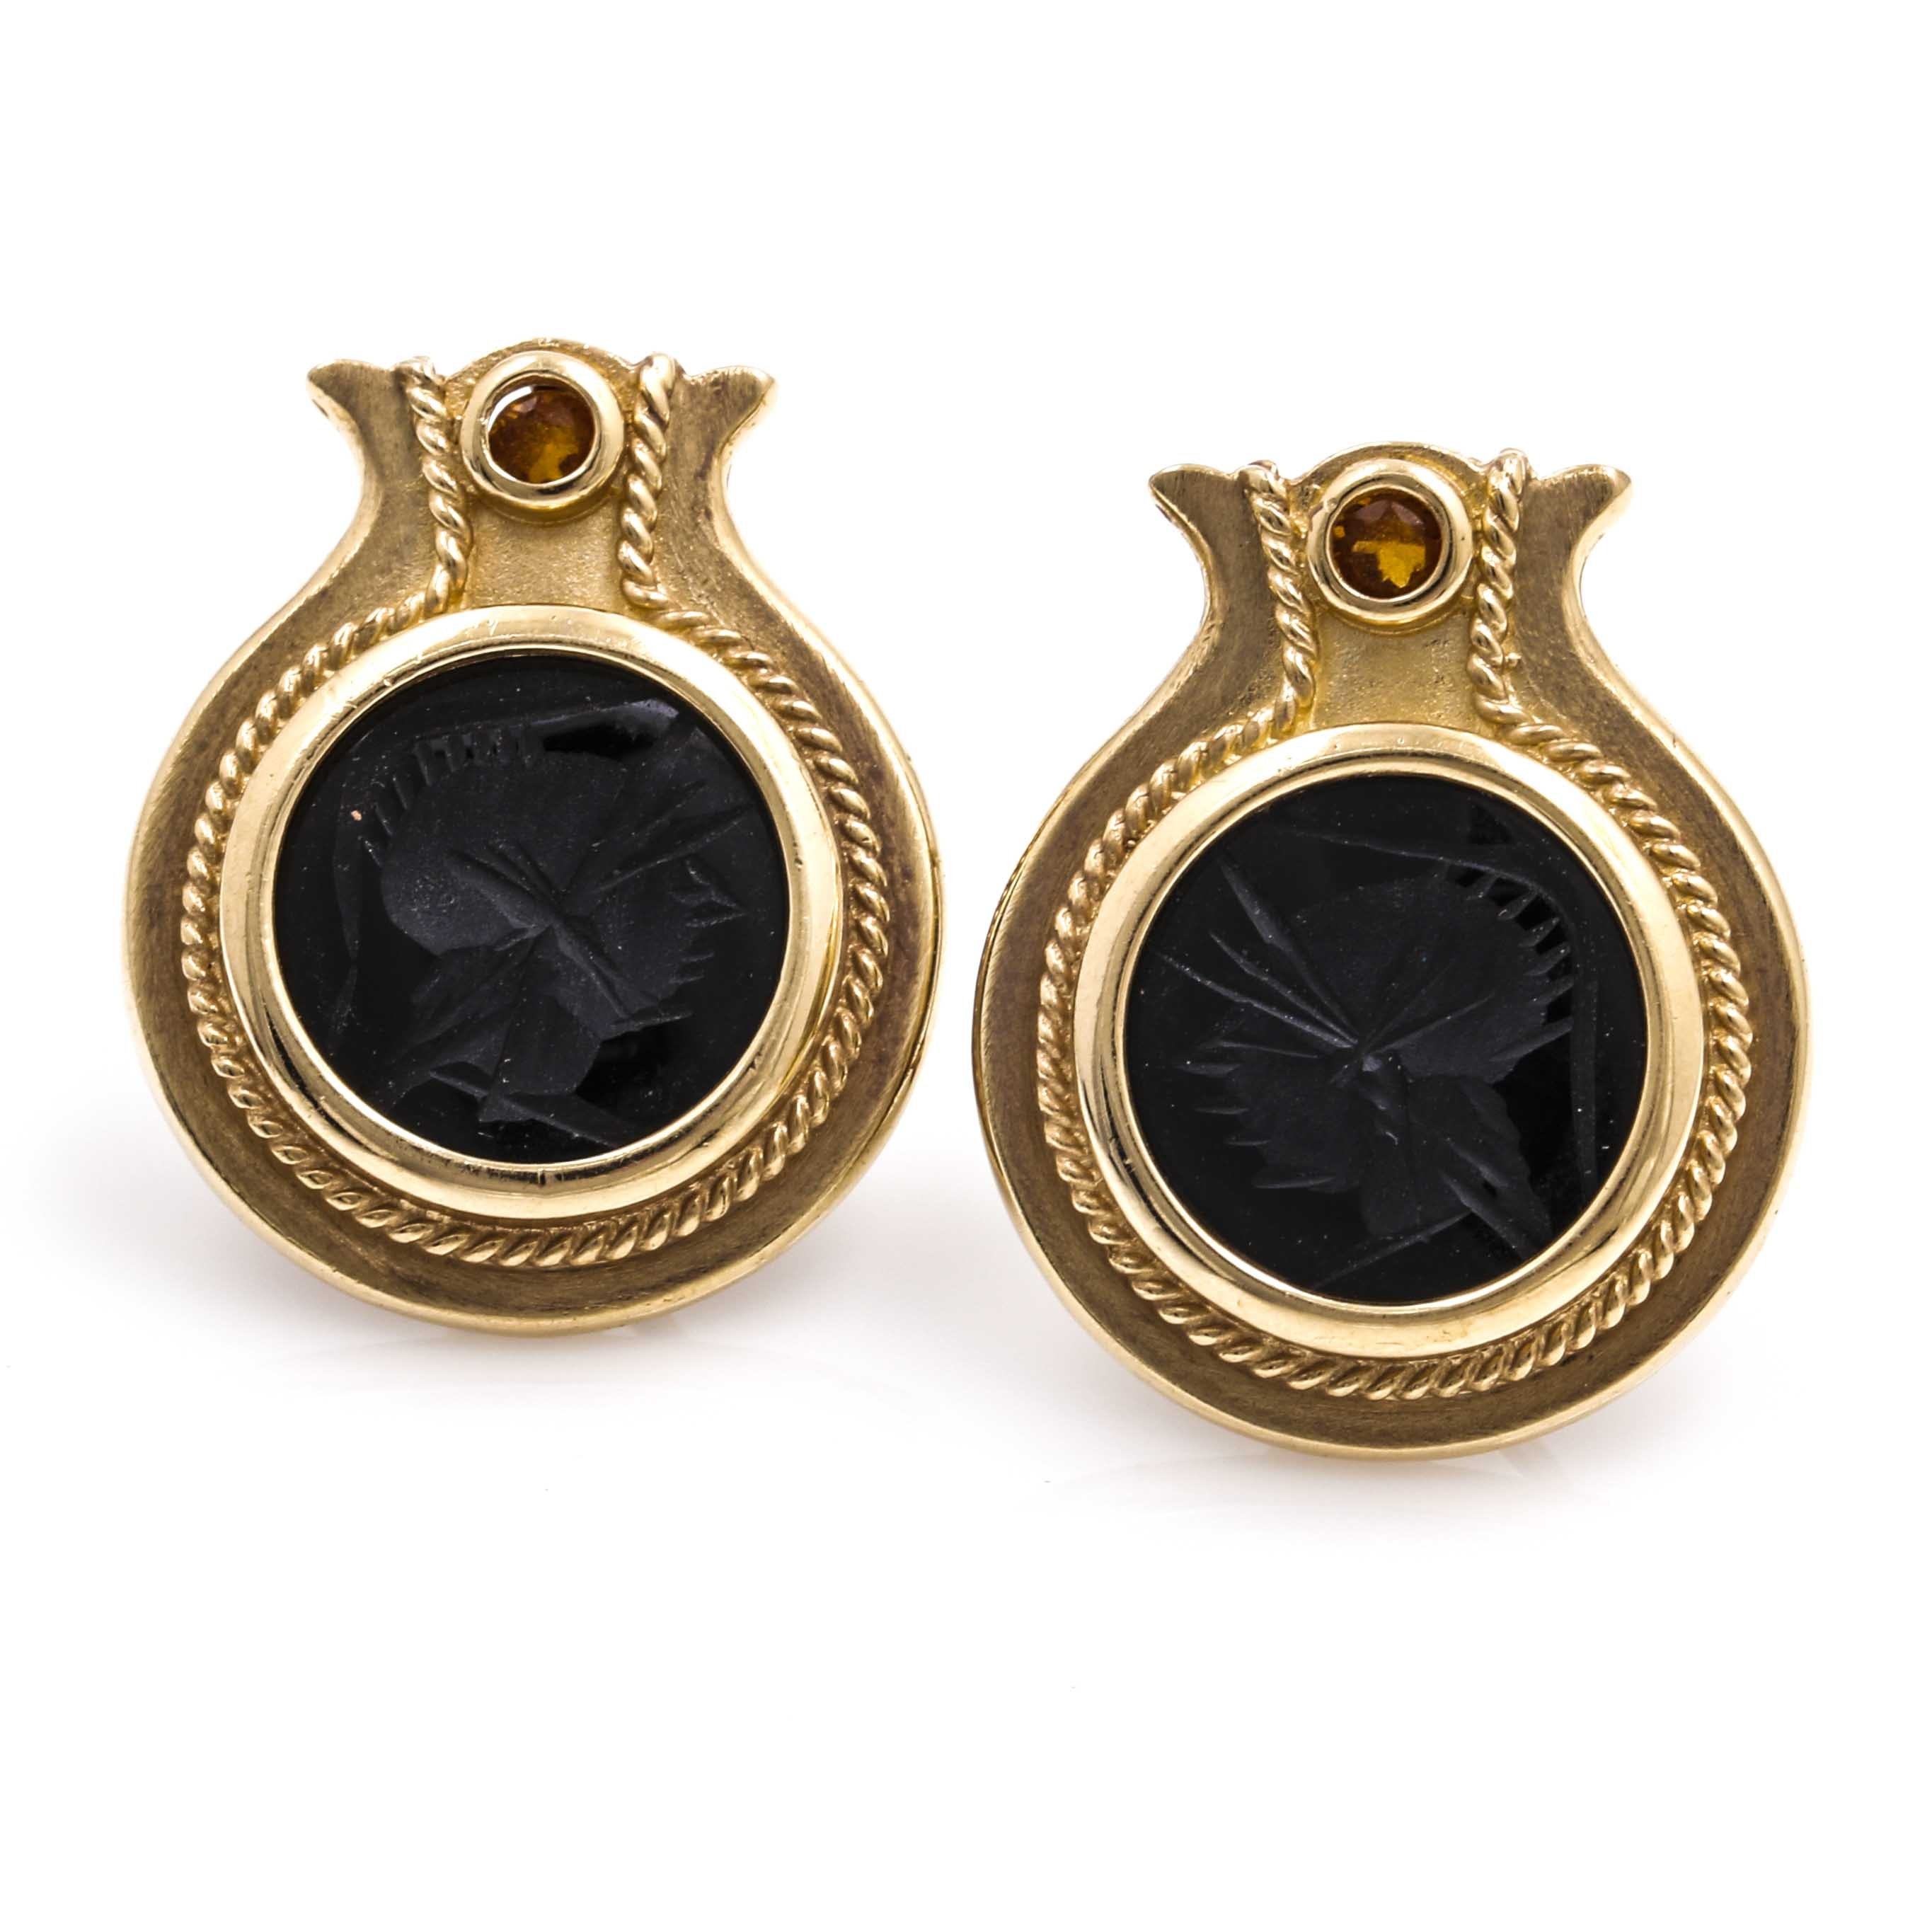 14K Yellow Gold Black Onyx Intaglio Cameo and Citrine Earrings